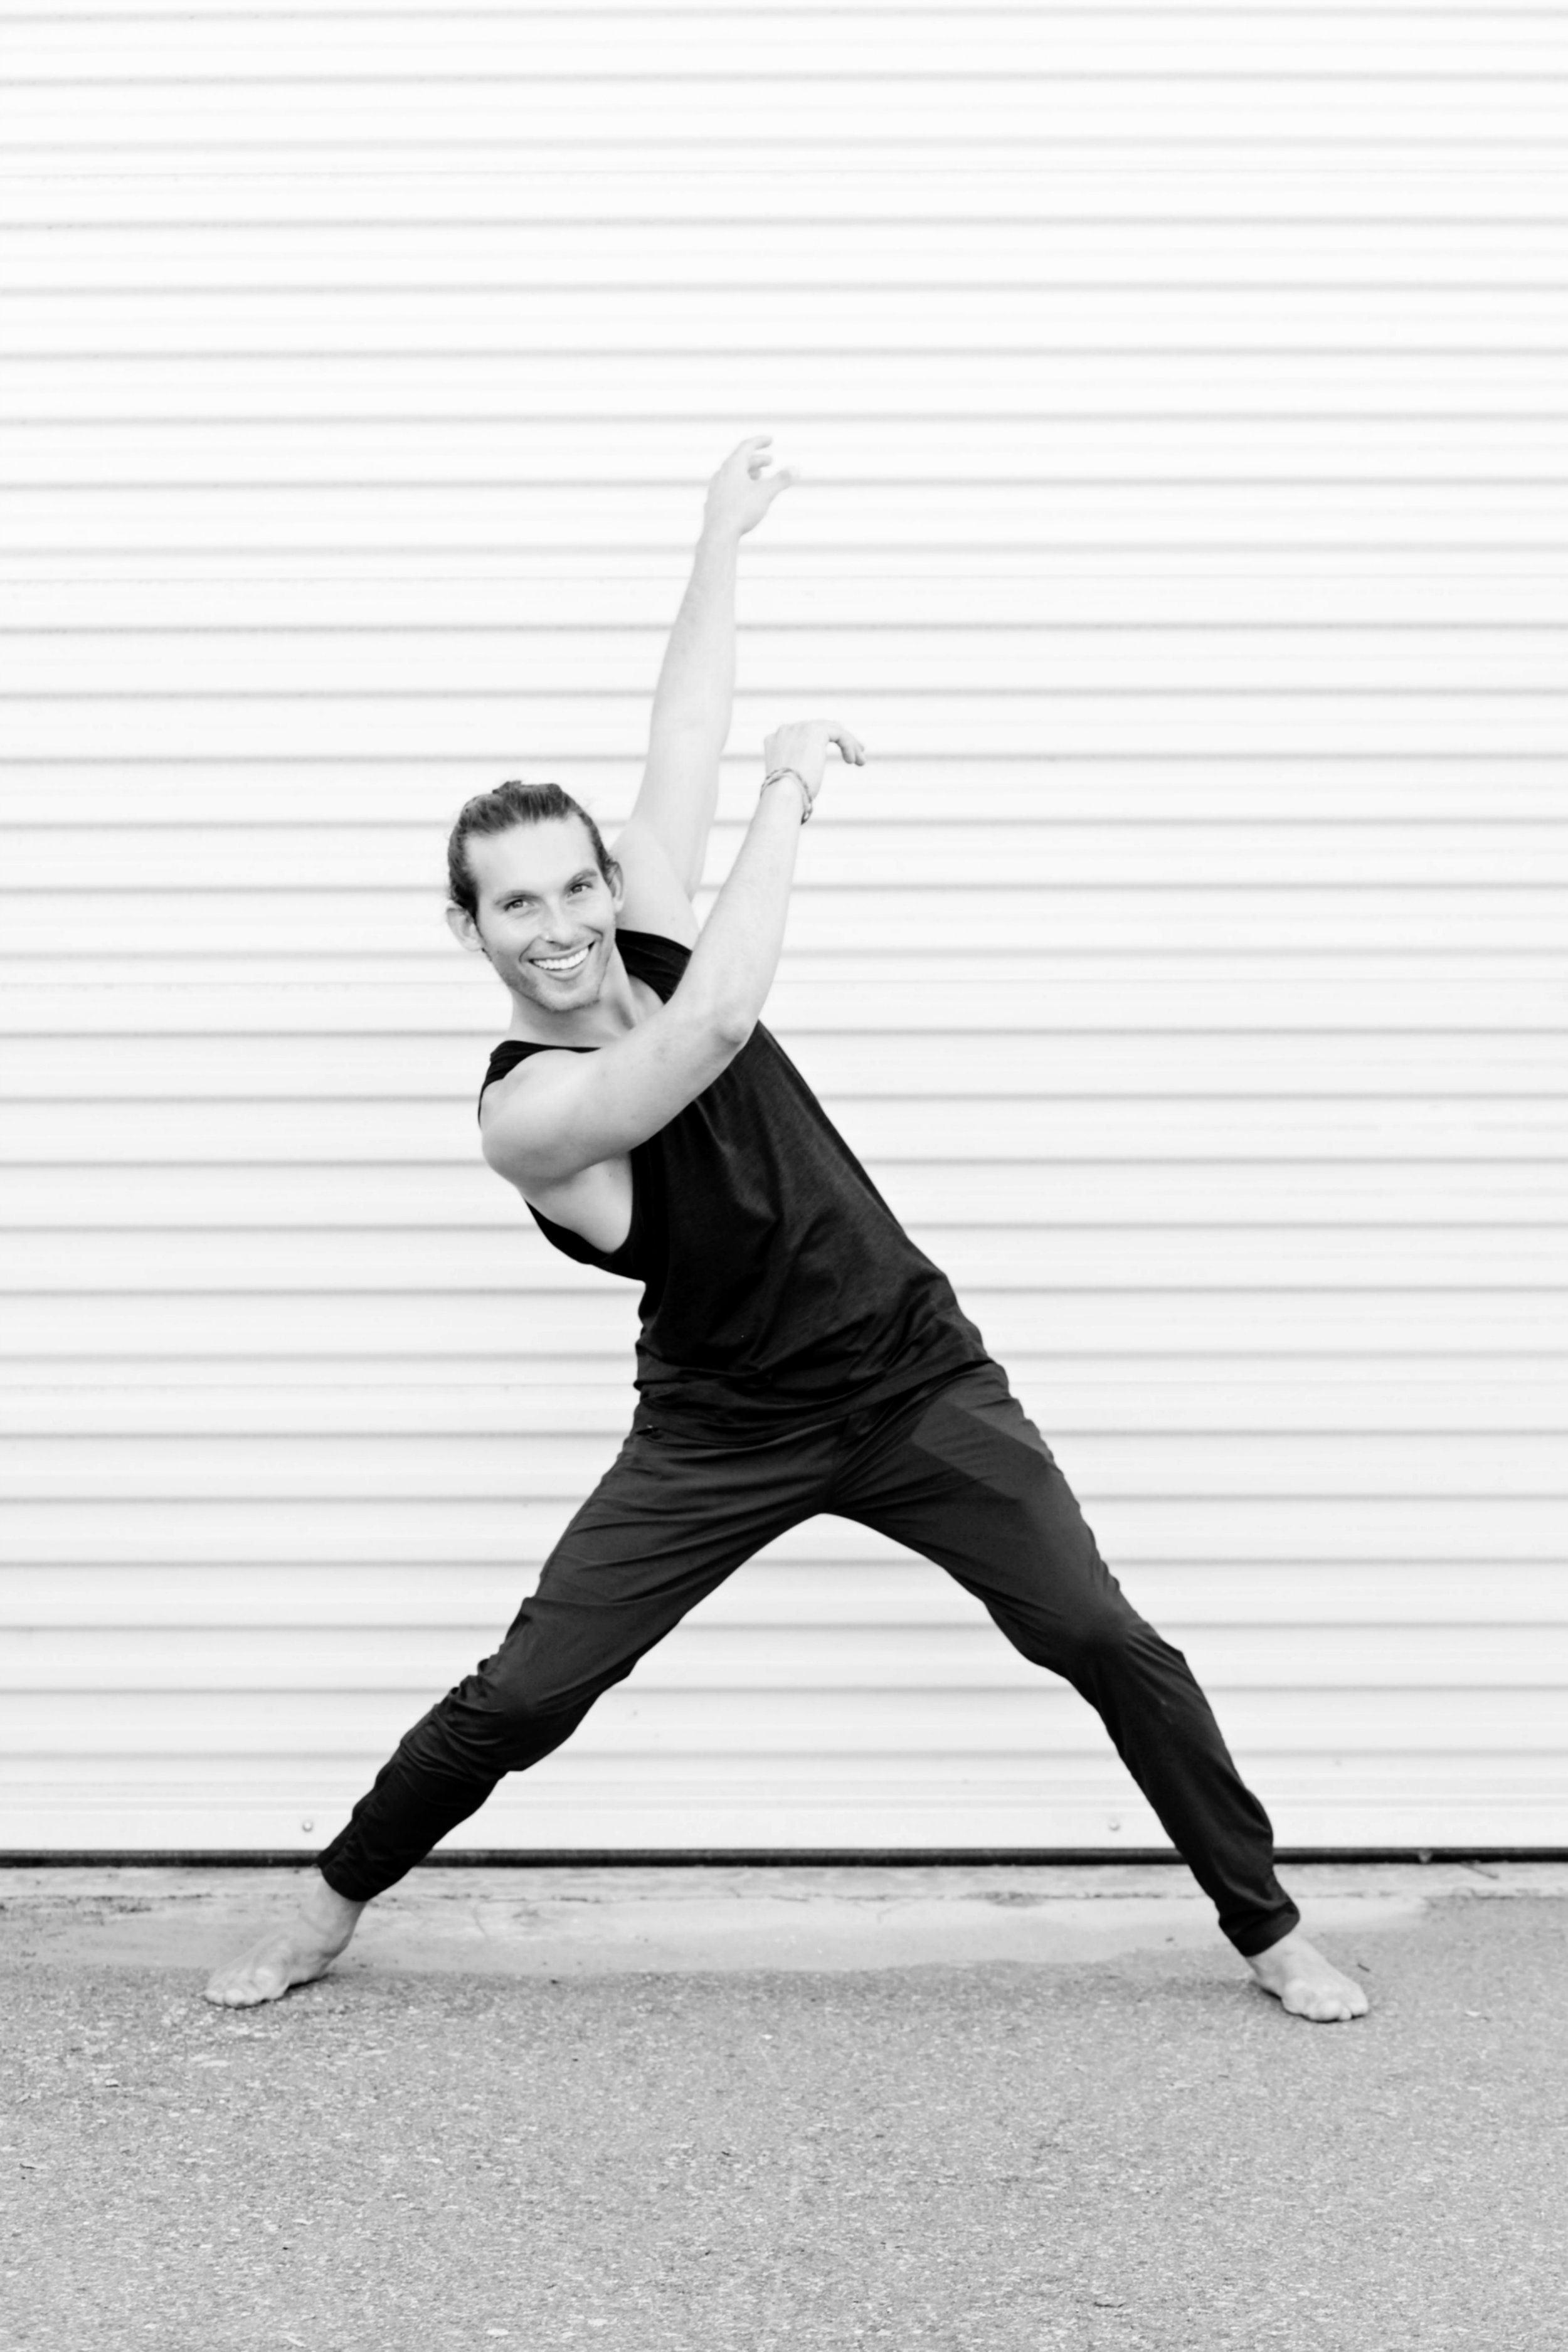 WILL JOHNSTON - Coming from the San Francisco Bay Area, WILL JOHNSTON received the majority of his training at A.K.A Dance Company under the direction of Kelly and Alex Velasquez. Will holds an M.F.A. in Dance from the University of California: Irvine as well as a B.F.A in Dance Performance, a B.F.A in Dance Choreography, and a B.S. in Mechanical Engineering. Credits include Clear Talent, Sonya Tayeh, Stacey Tookey, Justin Giles, Erica Sobol, Donald McKayle, Loretta Livingston, Jodie Gates, Wade Robson, Tyce Diorio, So You Think You Can Dance, Dancing with the Stars, Glee, Son Lux, Sigur Ros, FARR, X Ambassadors, and Katy Perry. In addition, Will is the co-director of Entity Contemporary Dance and a faculty member at West Coast Dance Explosion, Murrieta Dance Project, and Chapman University. He has taught and choreographed across the United States, Canada, Singapore, Hong Kong, Indonesia, Taiwan, and Australia.Recently Will won the ACE awards for his choreography will his Company Entity. Will's innovated style is loved by all and he is excited to continue sharing knowledge with the students at Murrieta Dance Project!